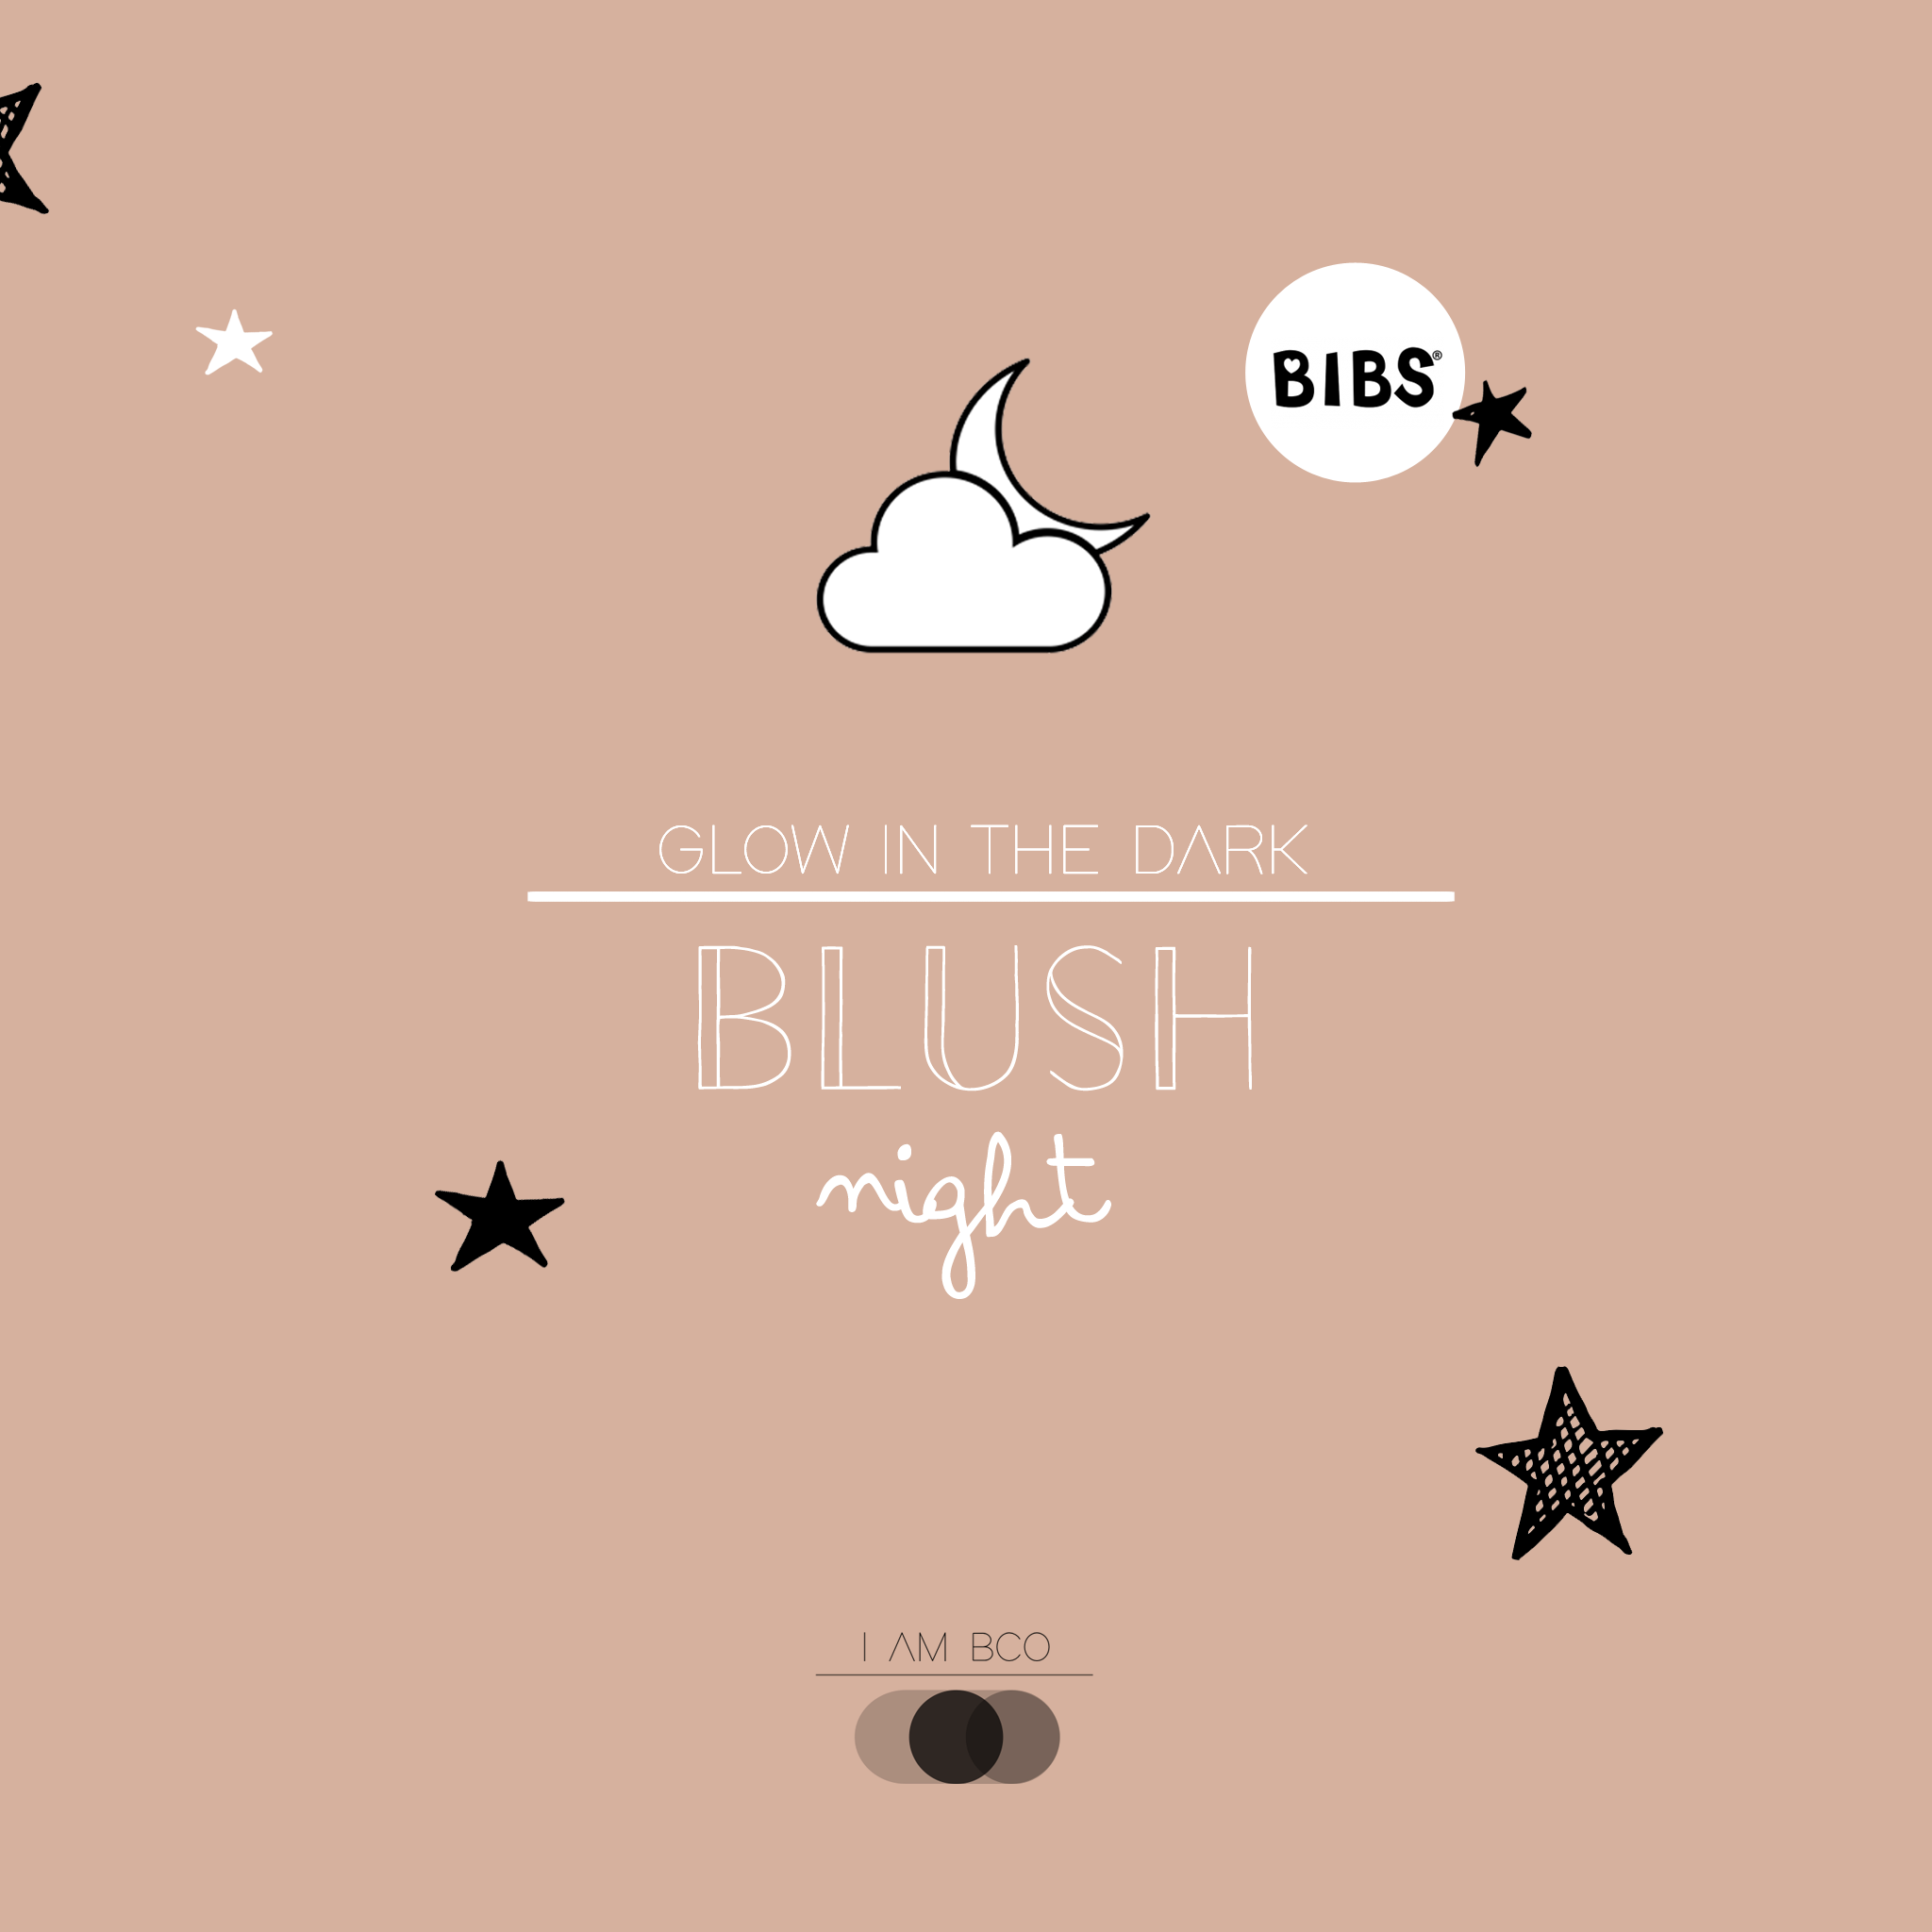 Bibs Blush Night